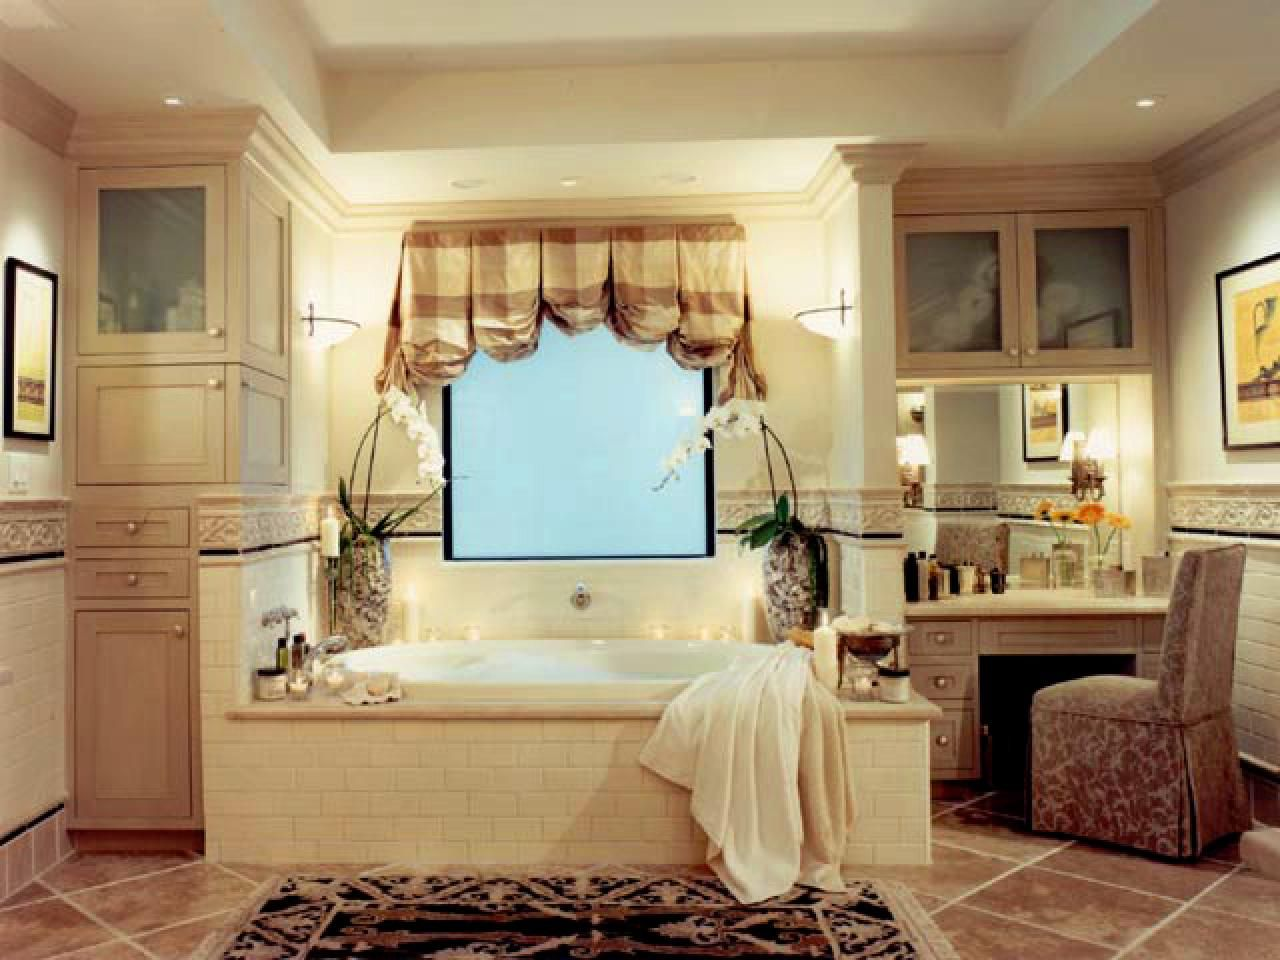 Adding Color and Pattern With Window Valances | Window ...